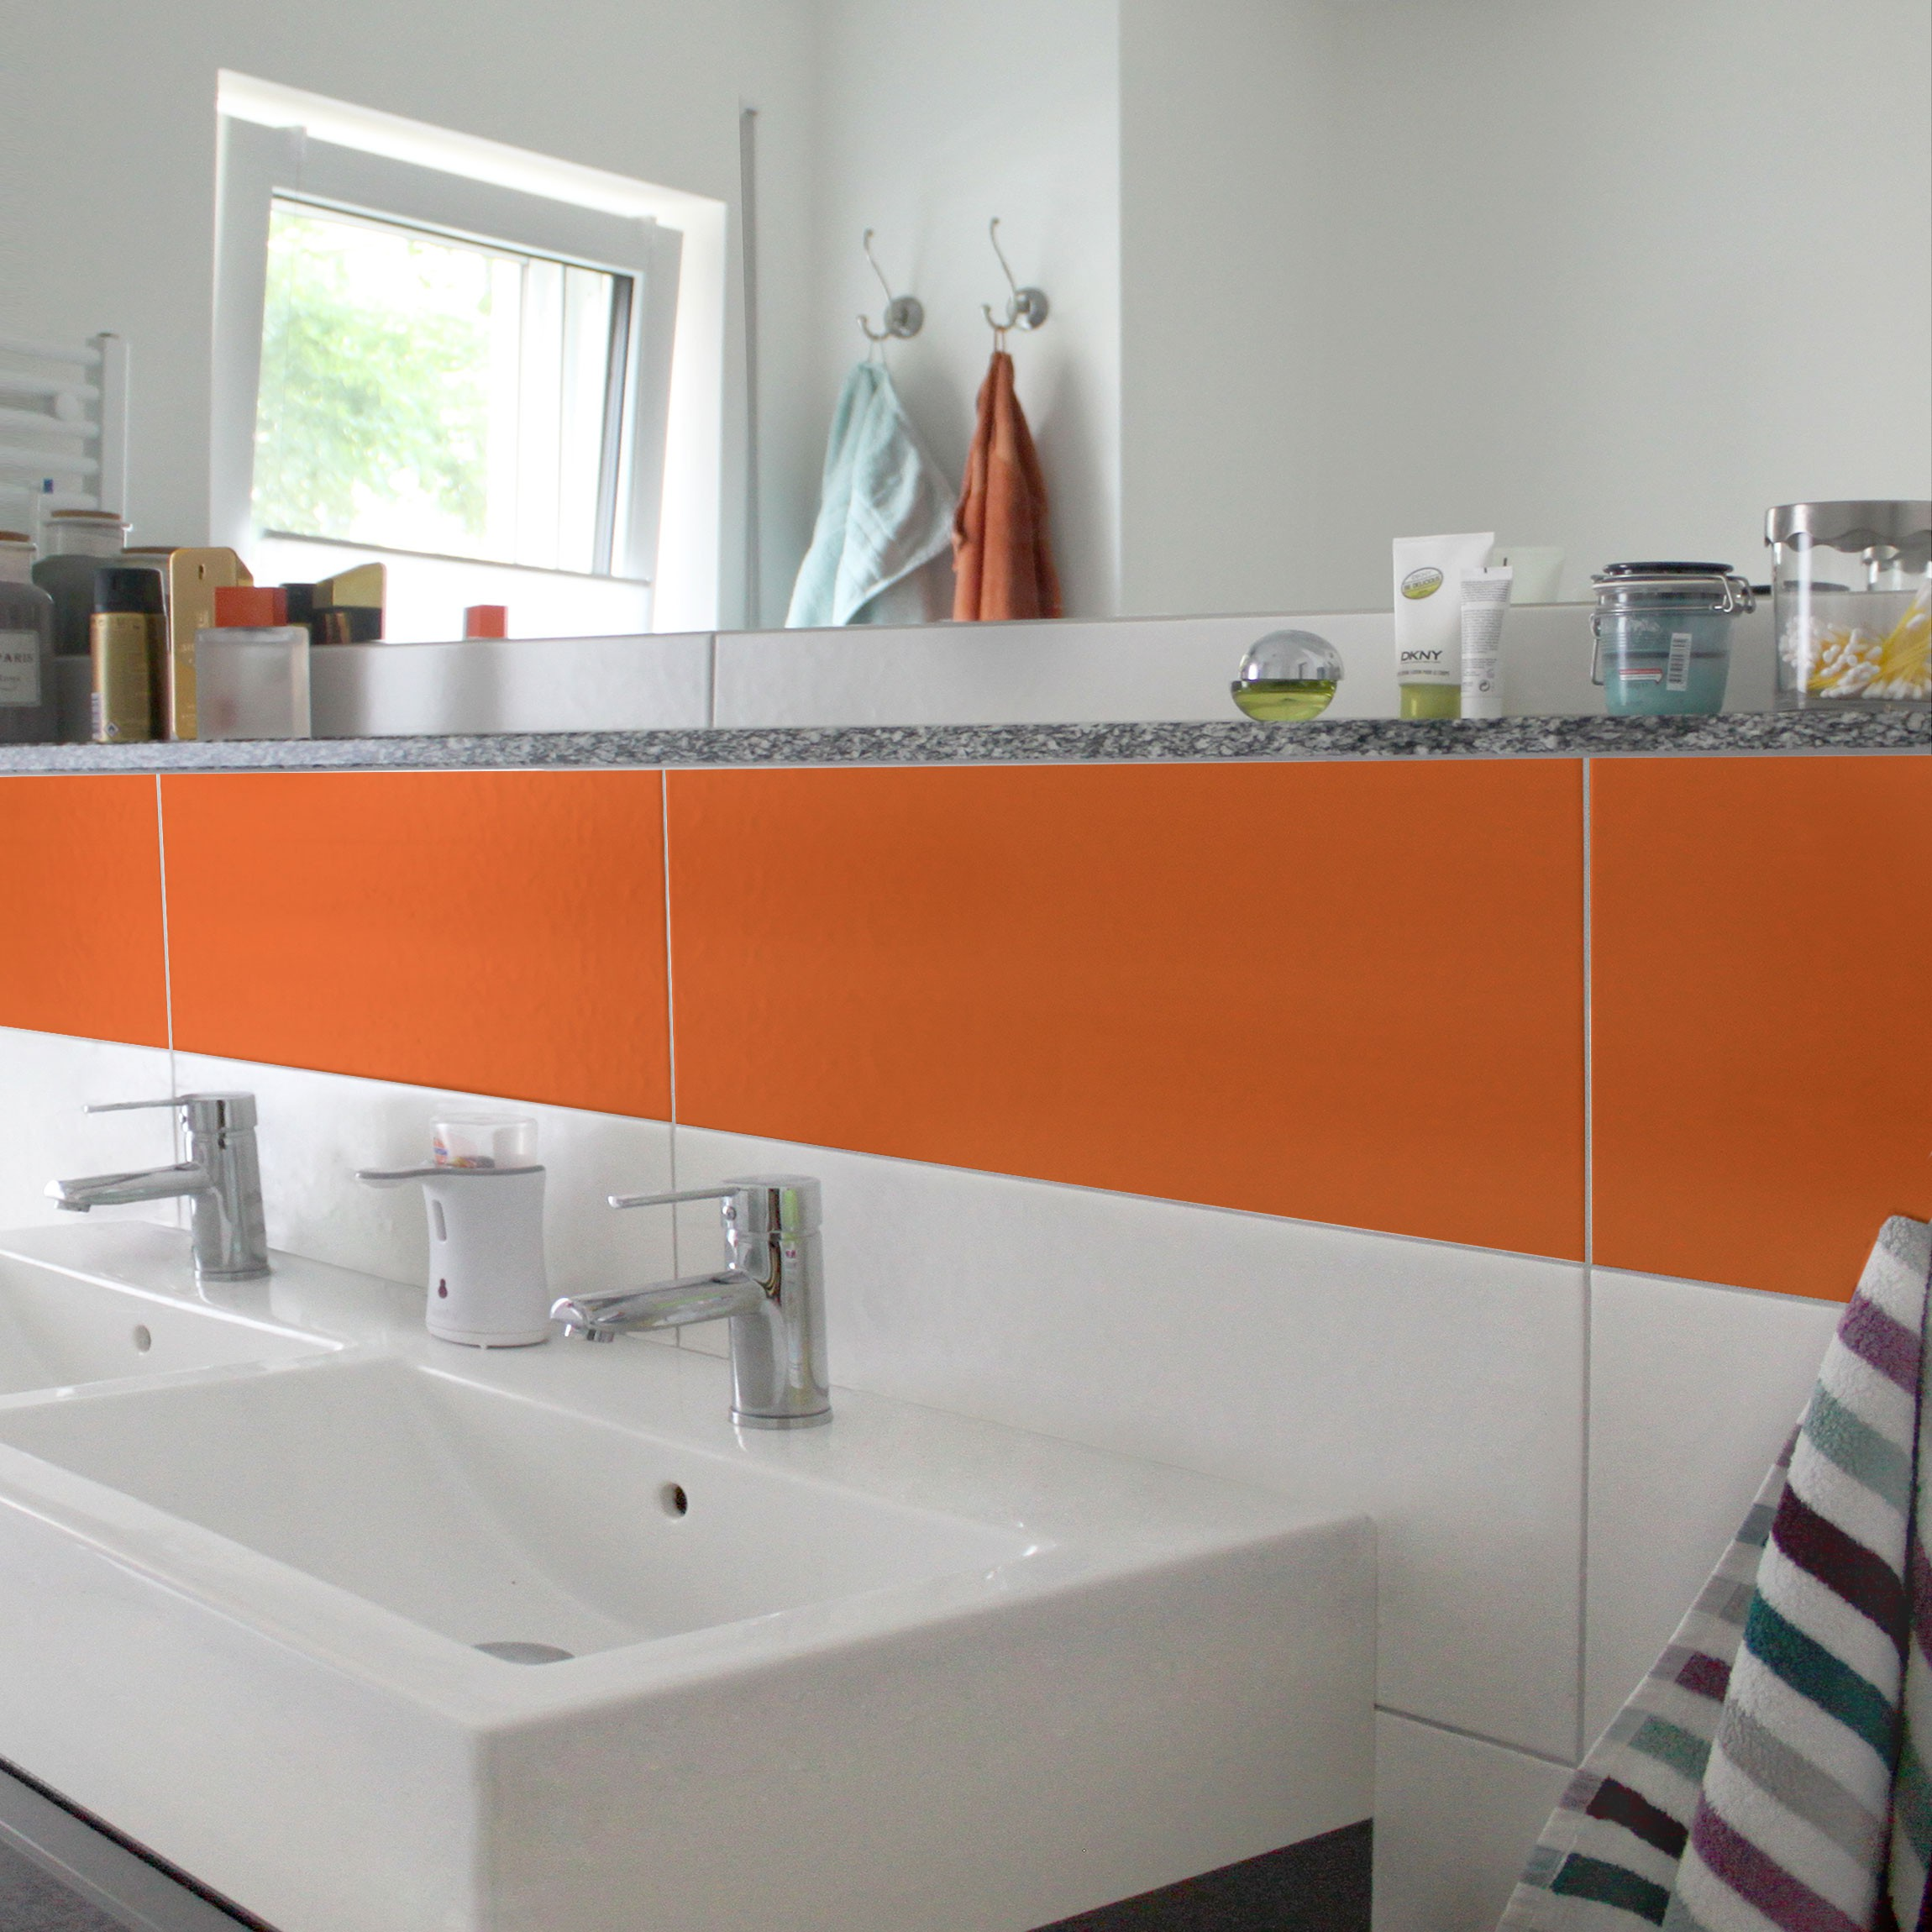 Fliesen bord re colour orange 30x60 cm fliesenaufkleber - Orange fliesen ...